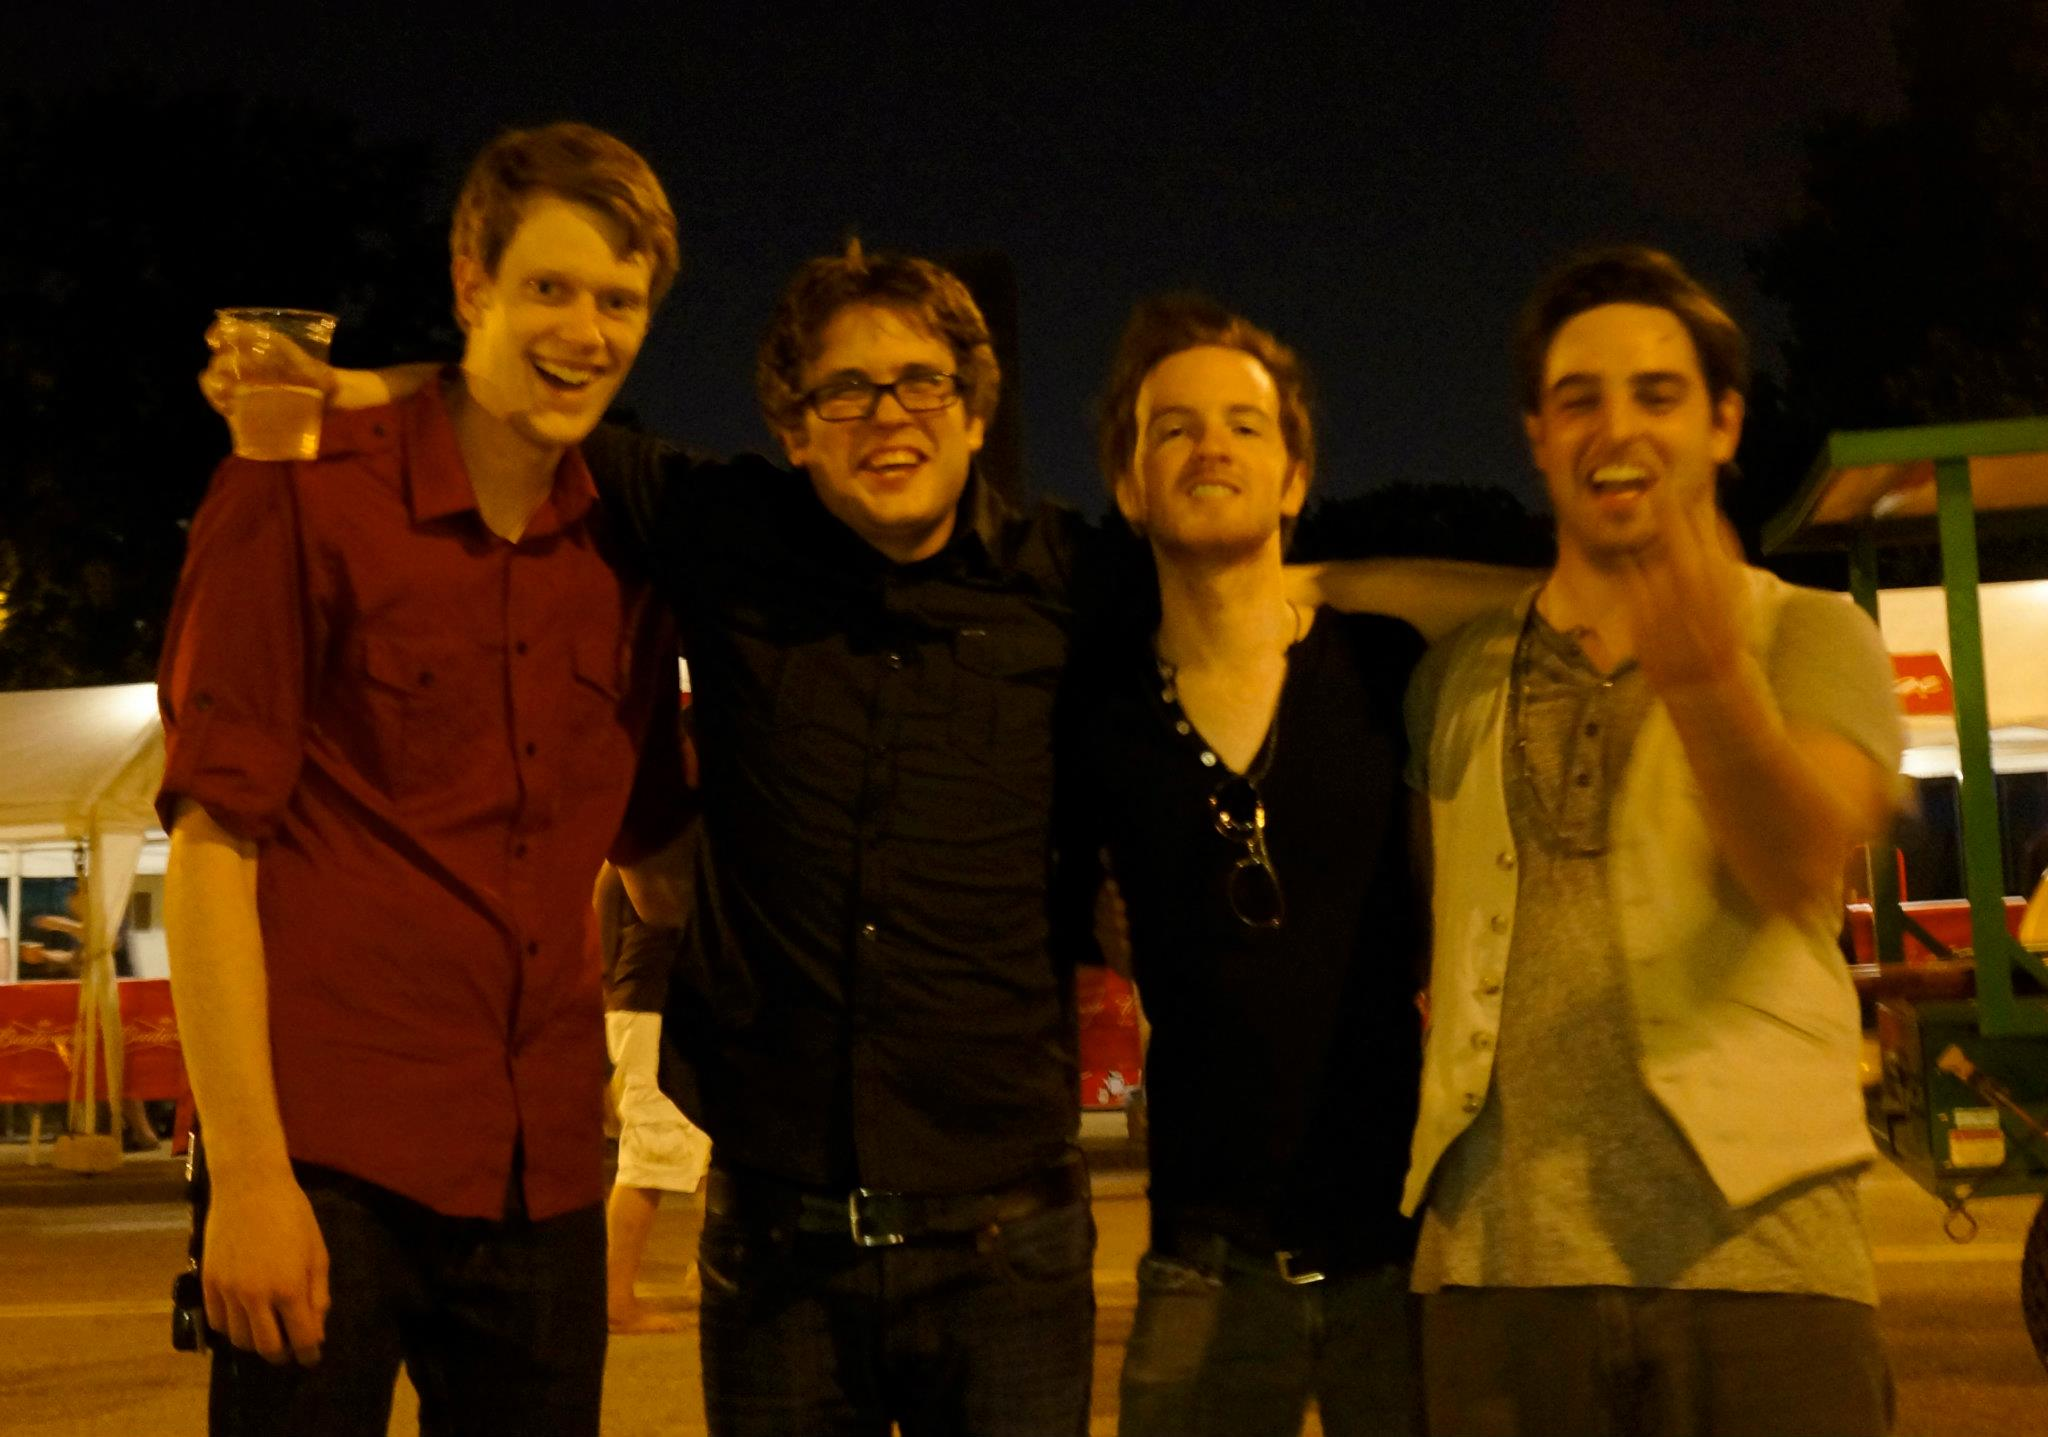 This was such a bad picture of all of us but it captures the fun we had. This was taken after we played with the Offspring in 2012.